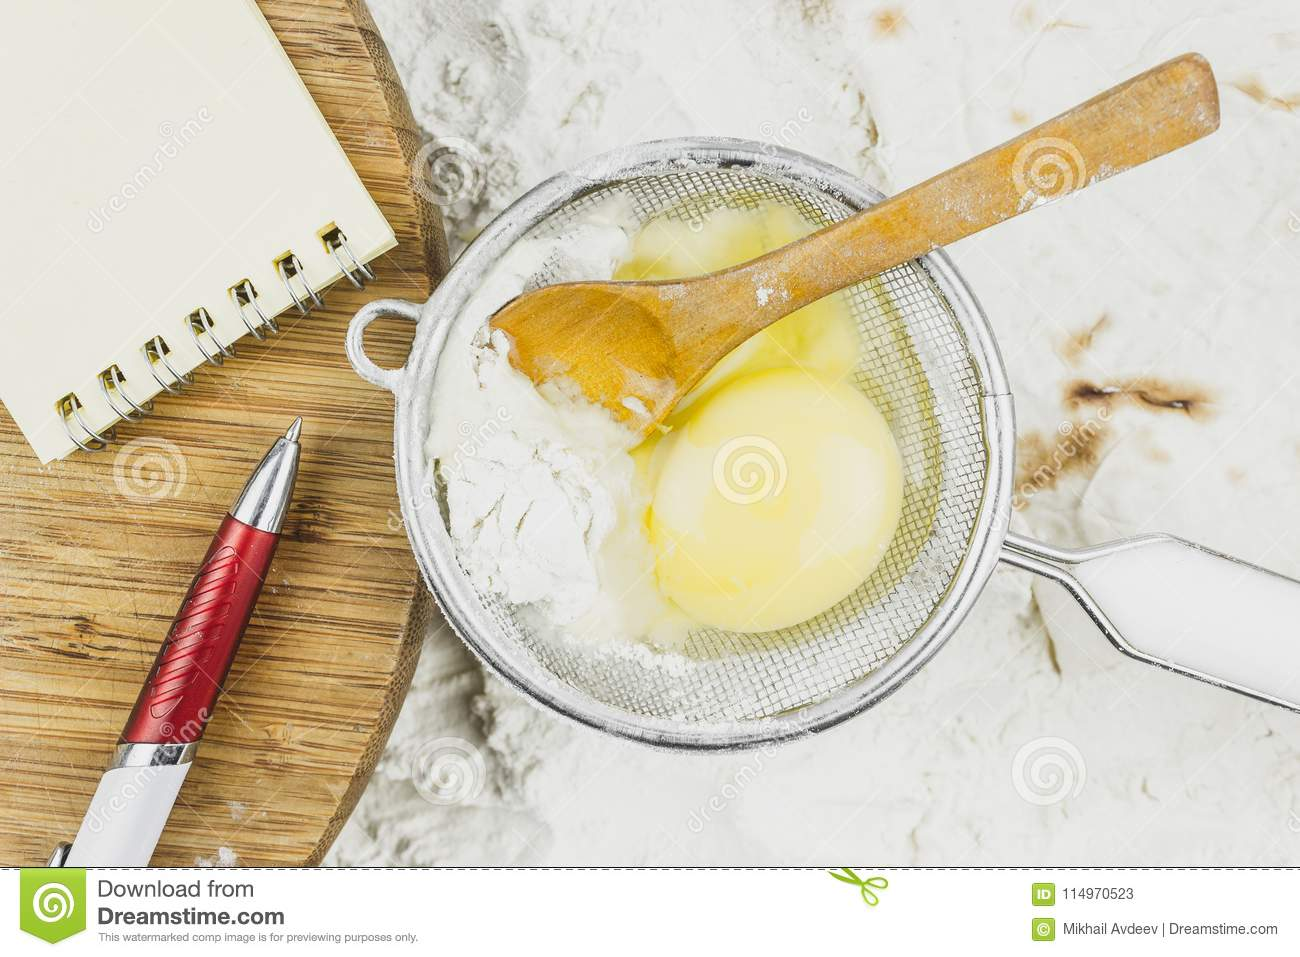 Notebook for recipes, egg, wooden spoon on a background of flour.